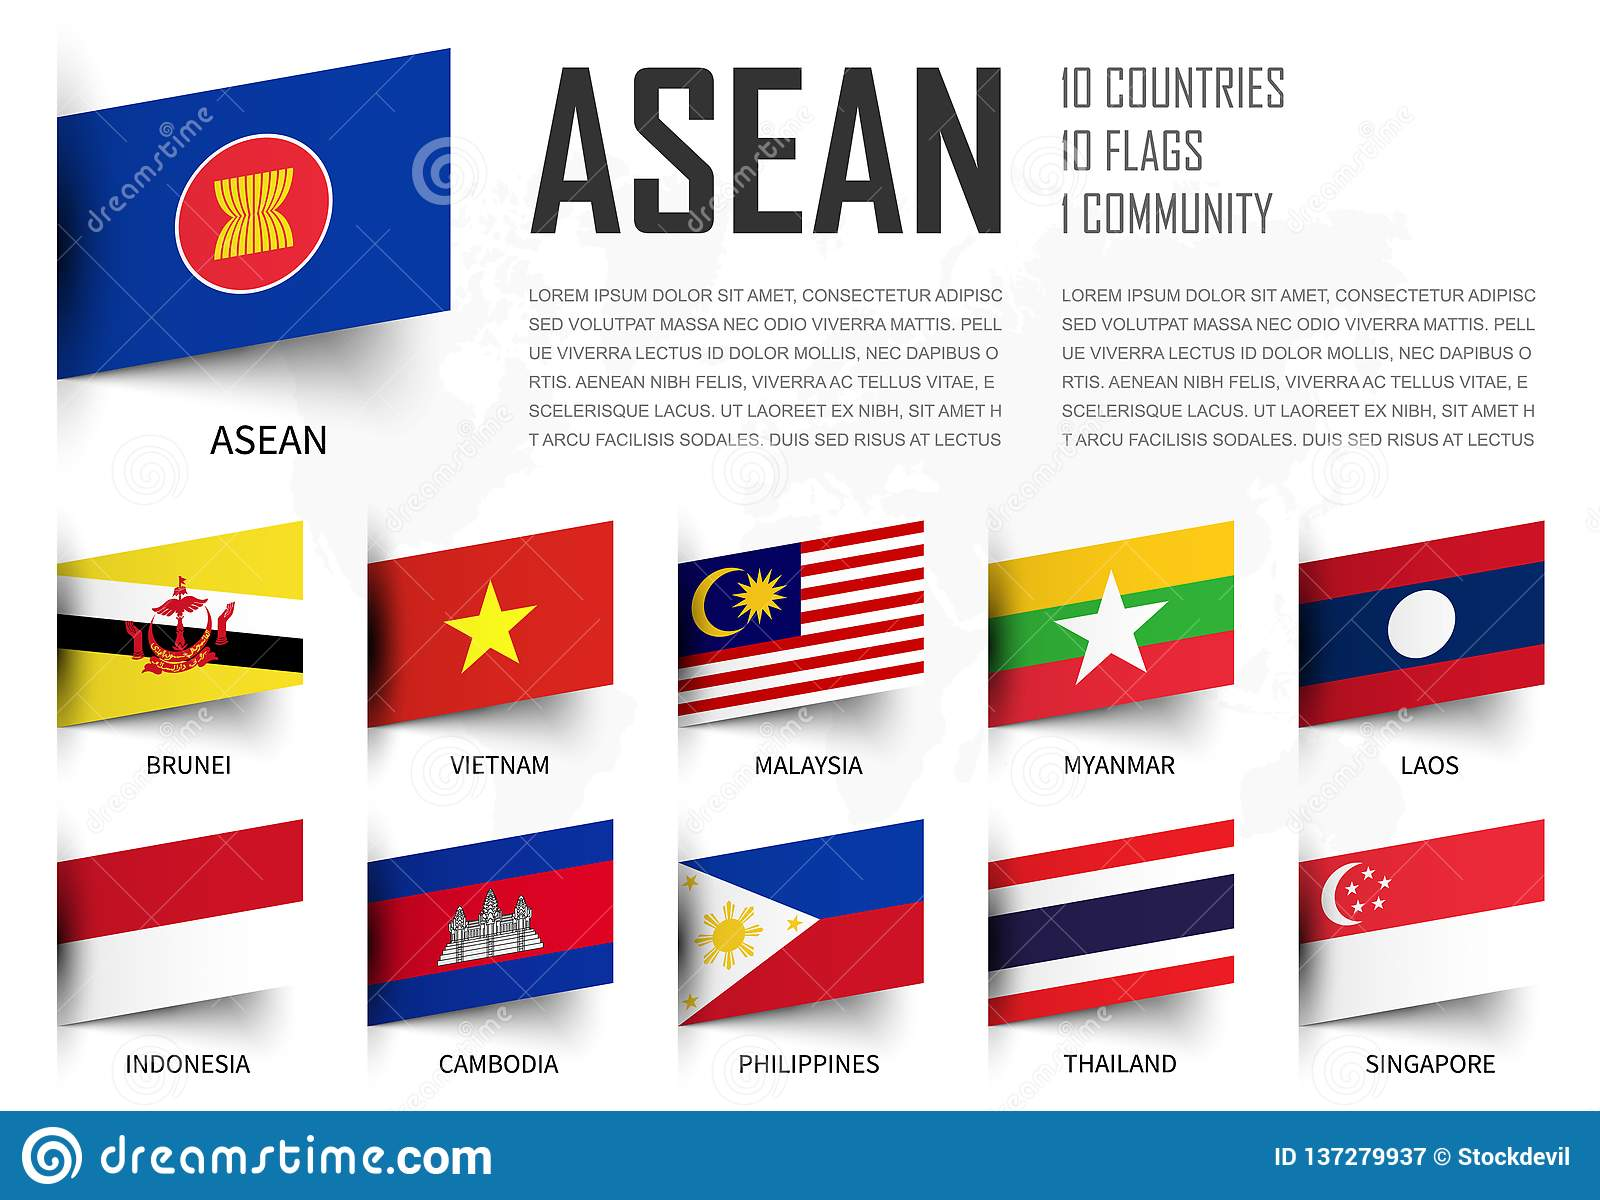 Association of southeast asian nations members